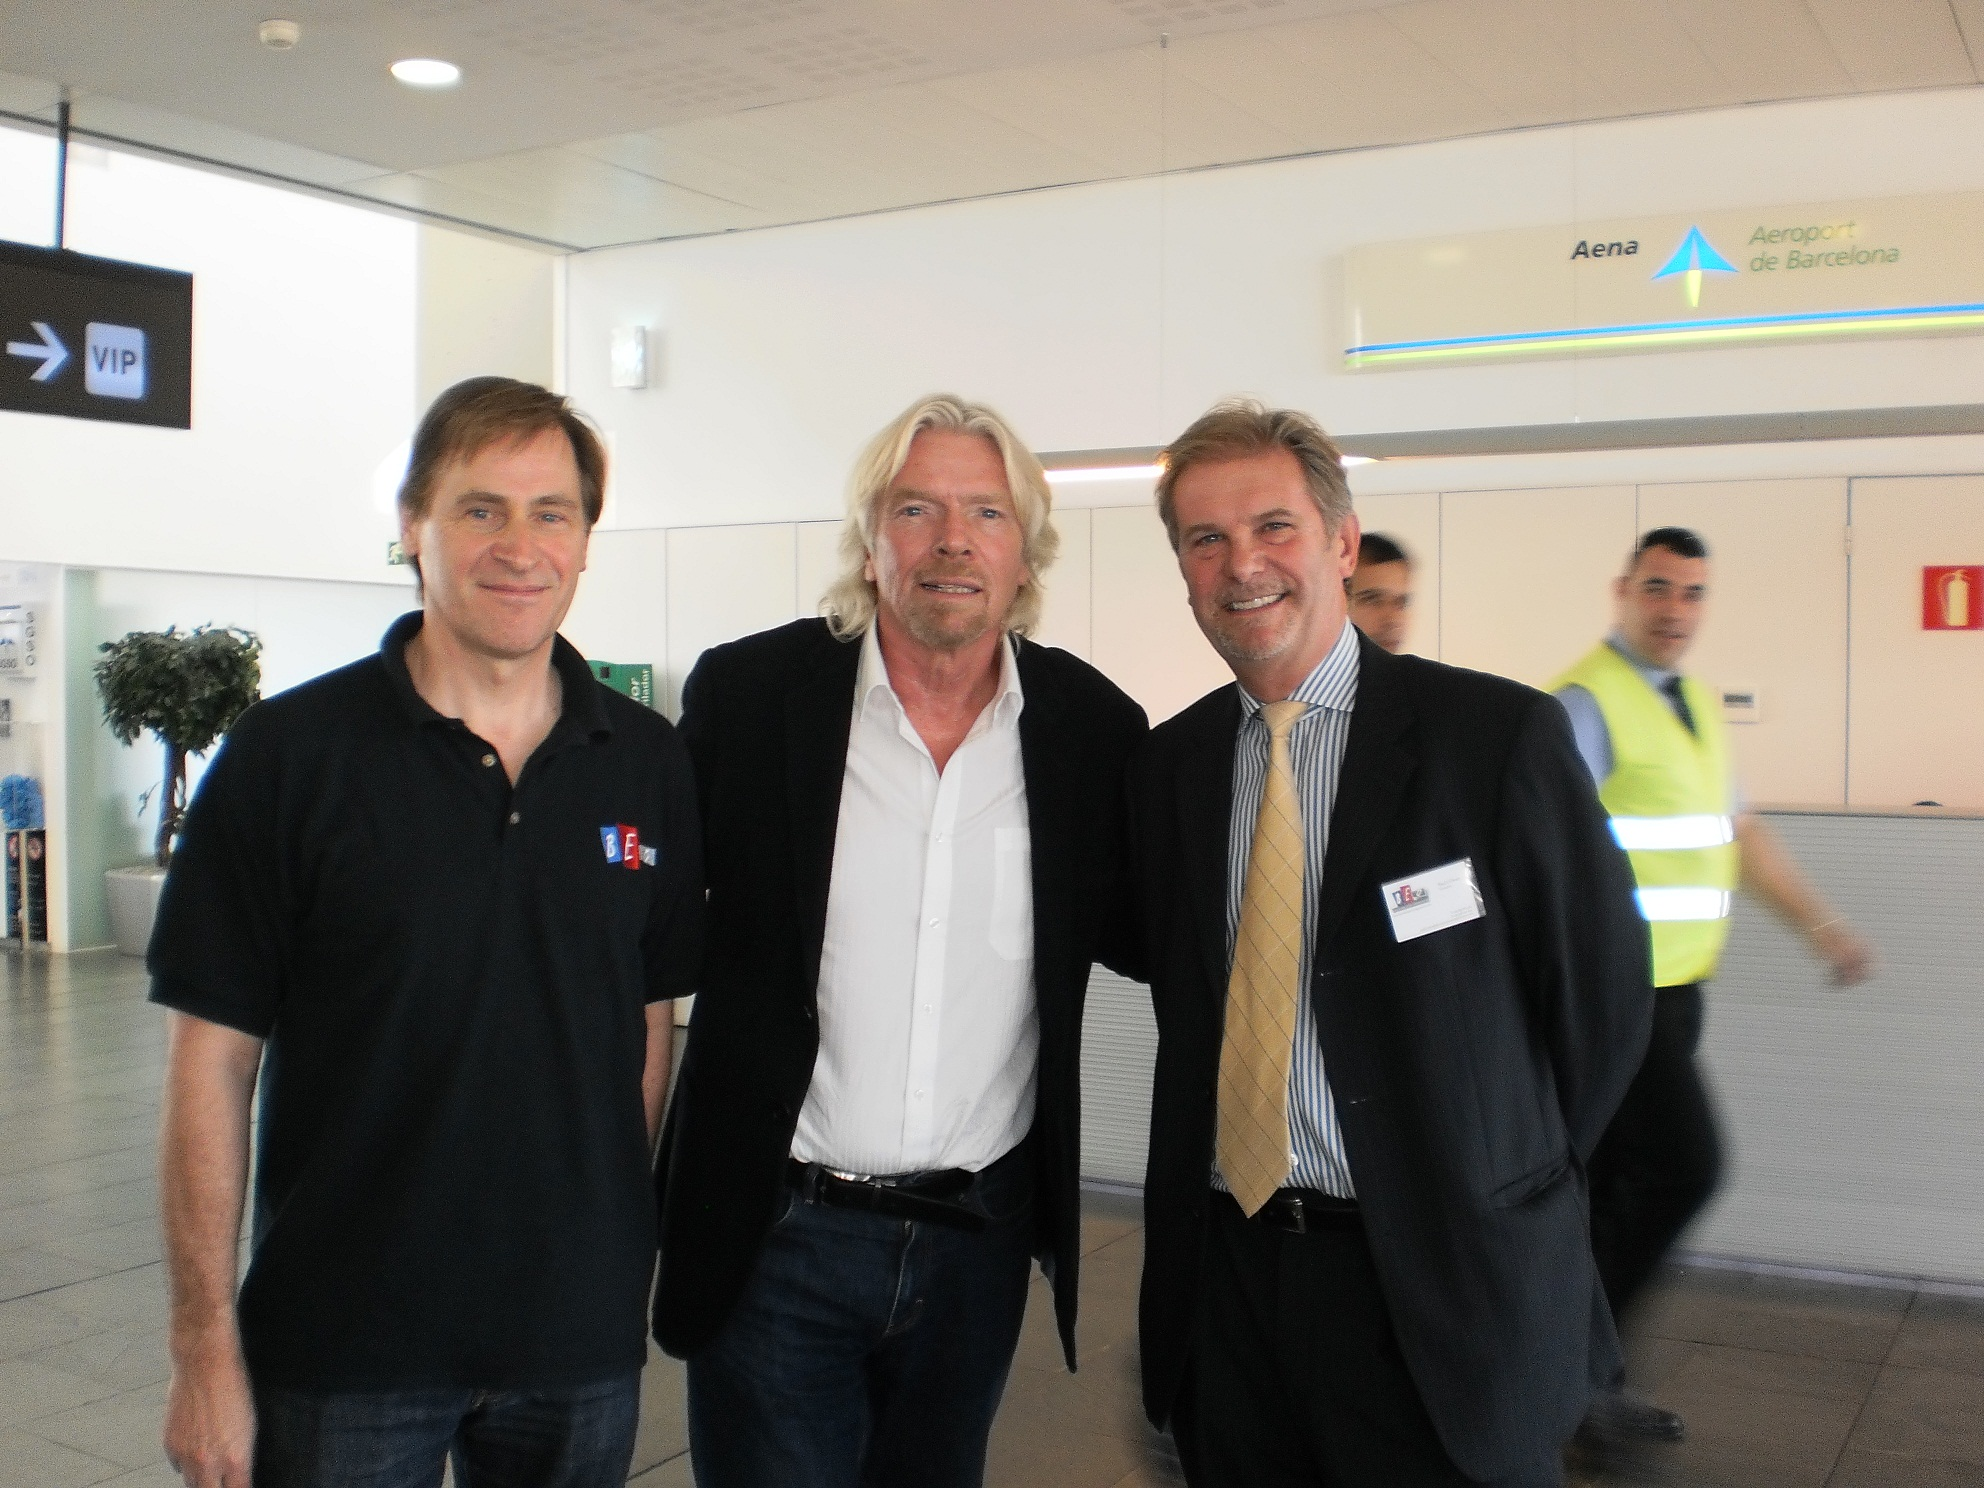 barcelona event organisation and sir richard branson barcelona 2012